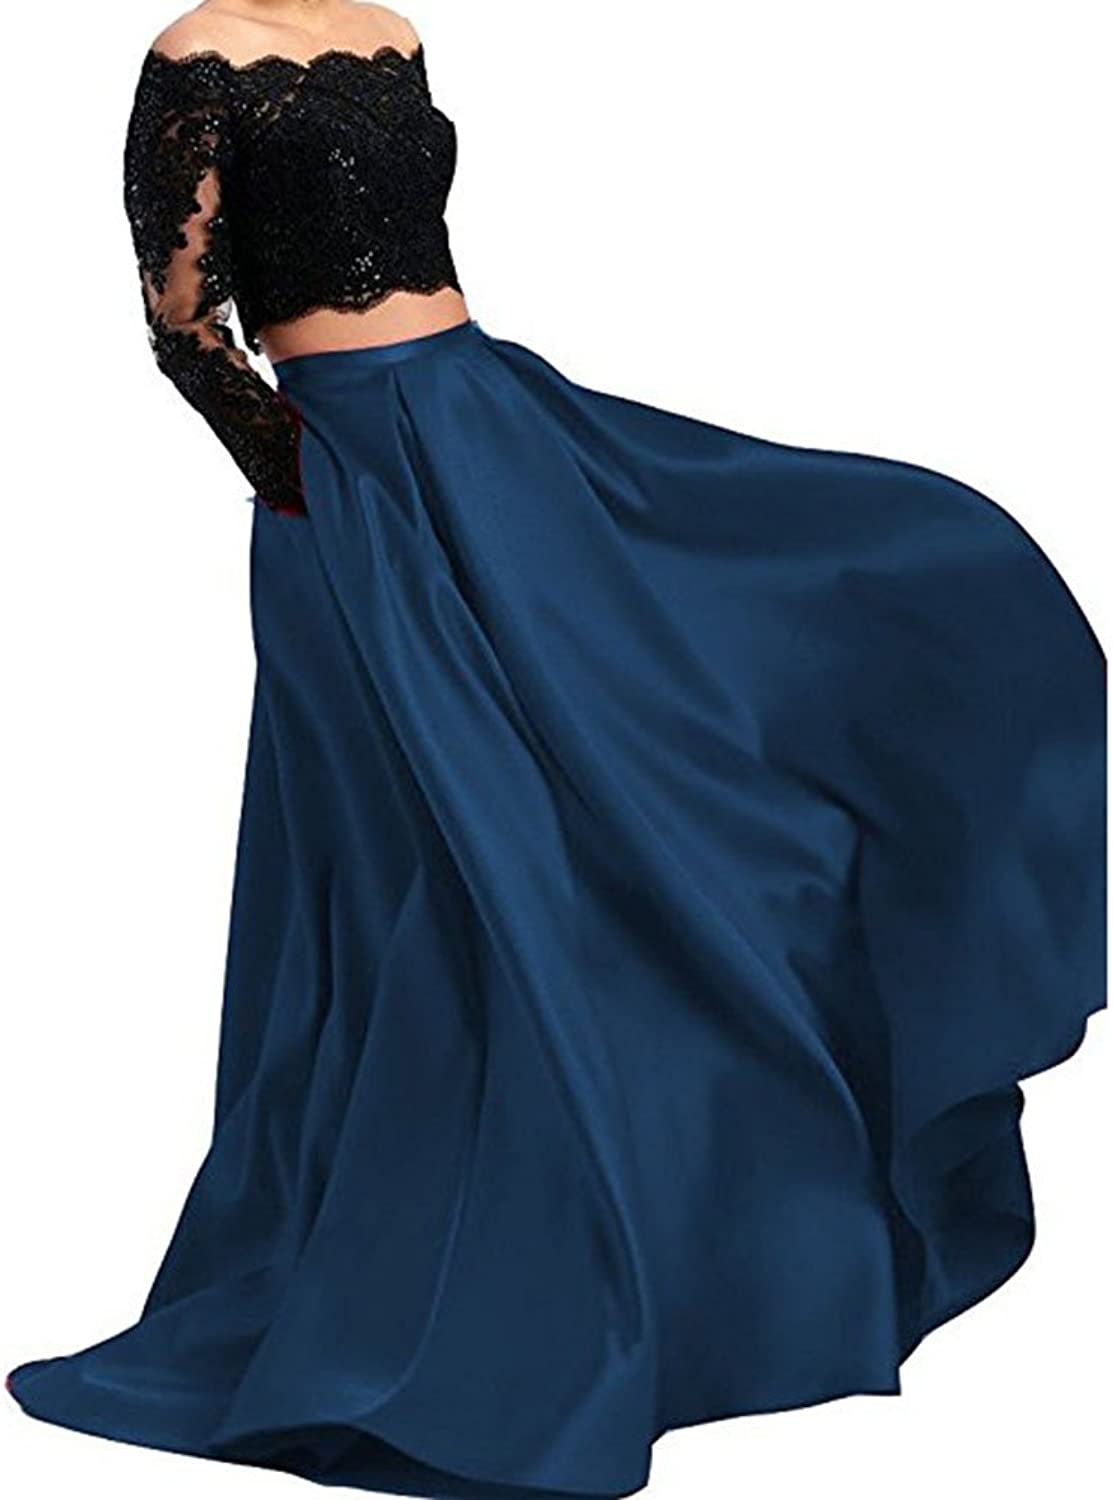 WHZZ Elegant Two Pieces Long Sleeve Lace Prom Dresses Womens Formal Evening Gowns